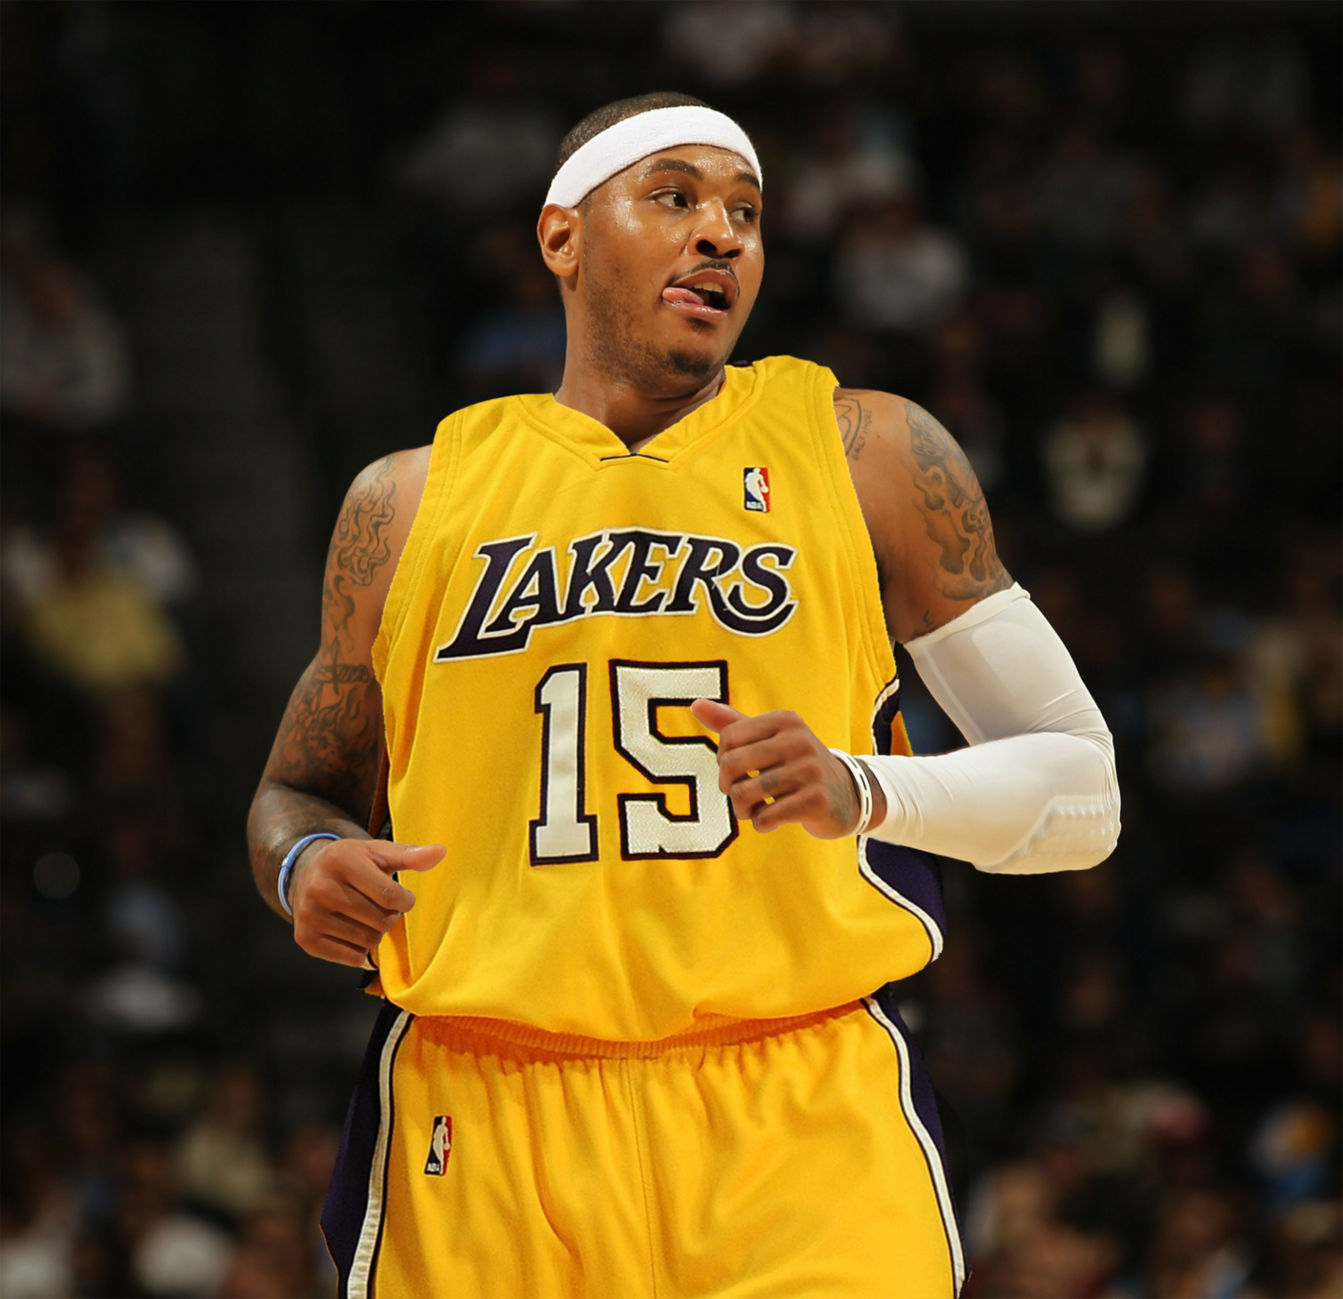 'Melo And LeBron To The Lakers? – The Cauldron